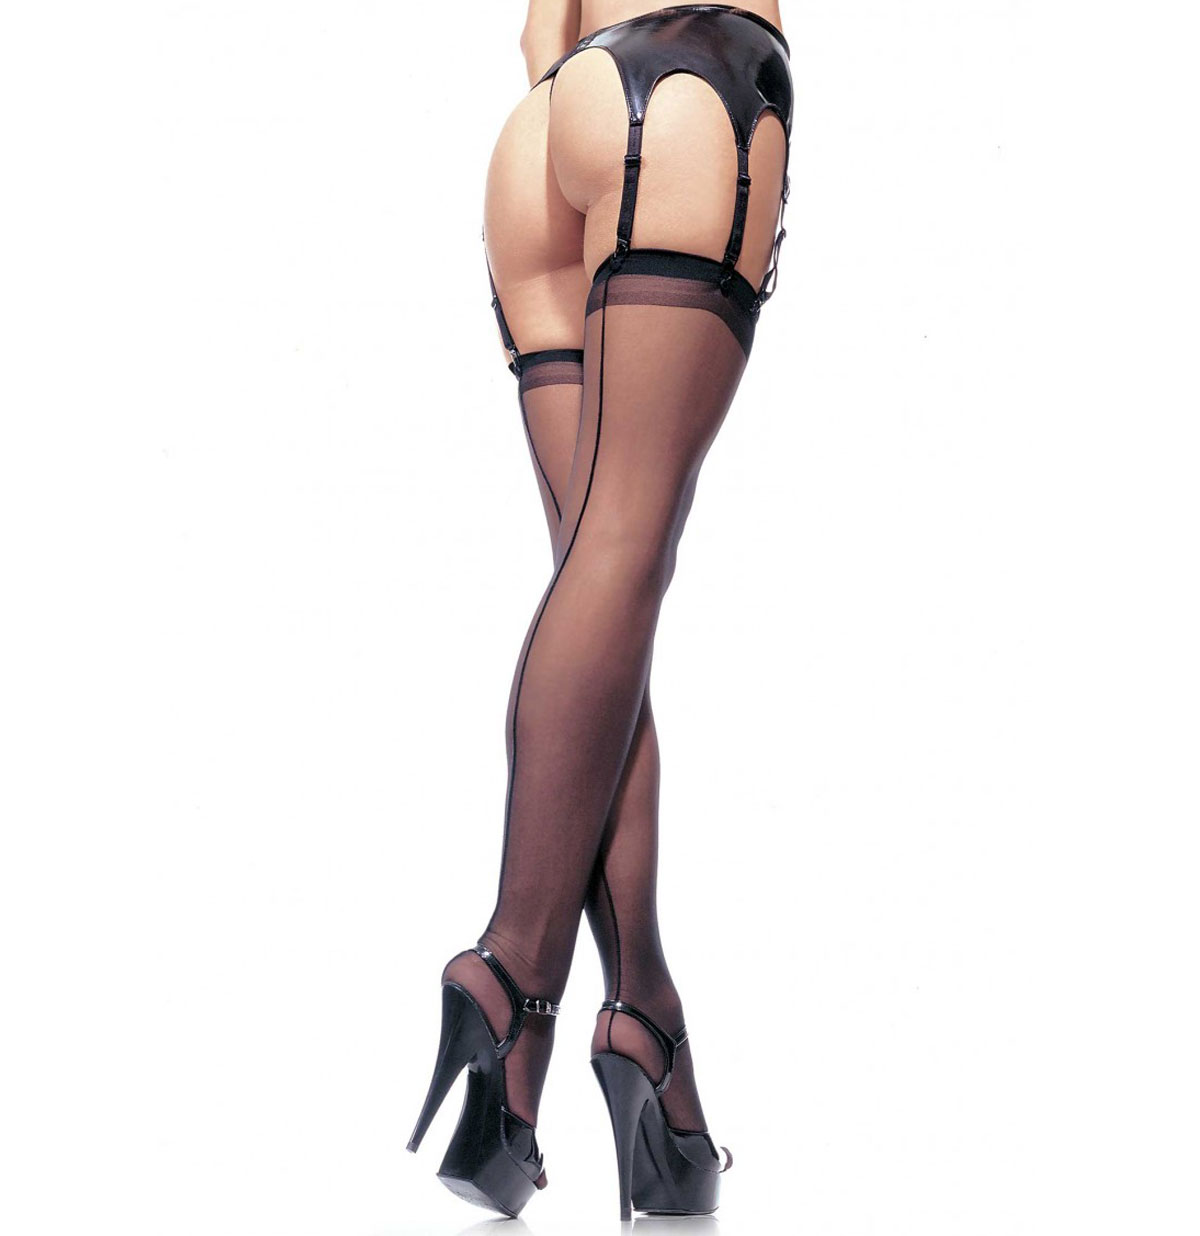 Sheer Stockings Black Seam - Plus Size